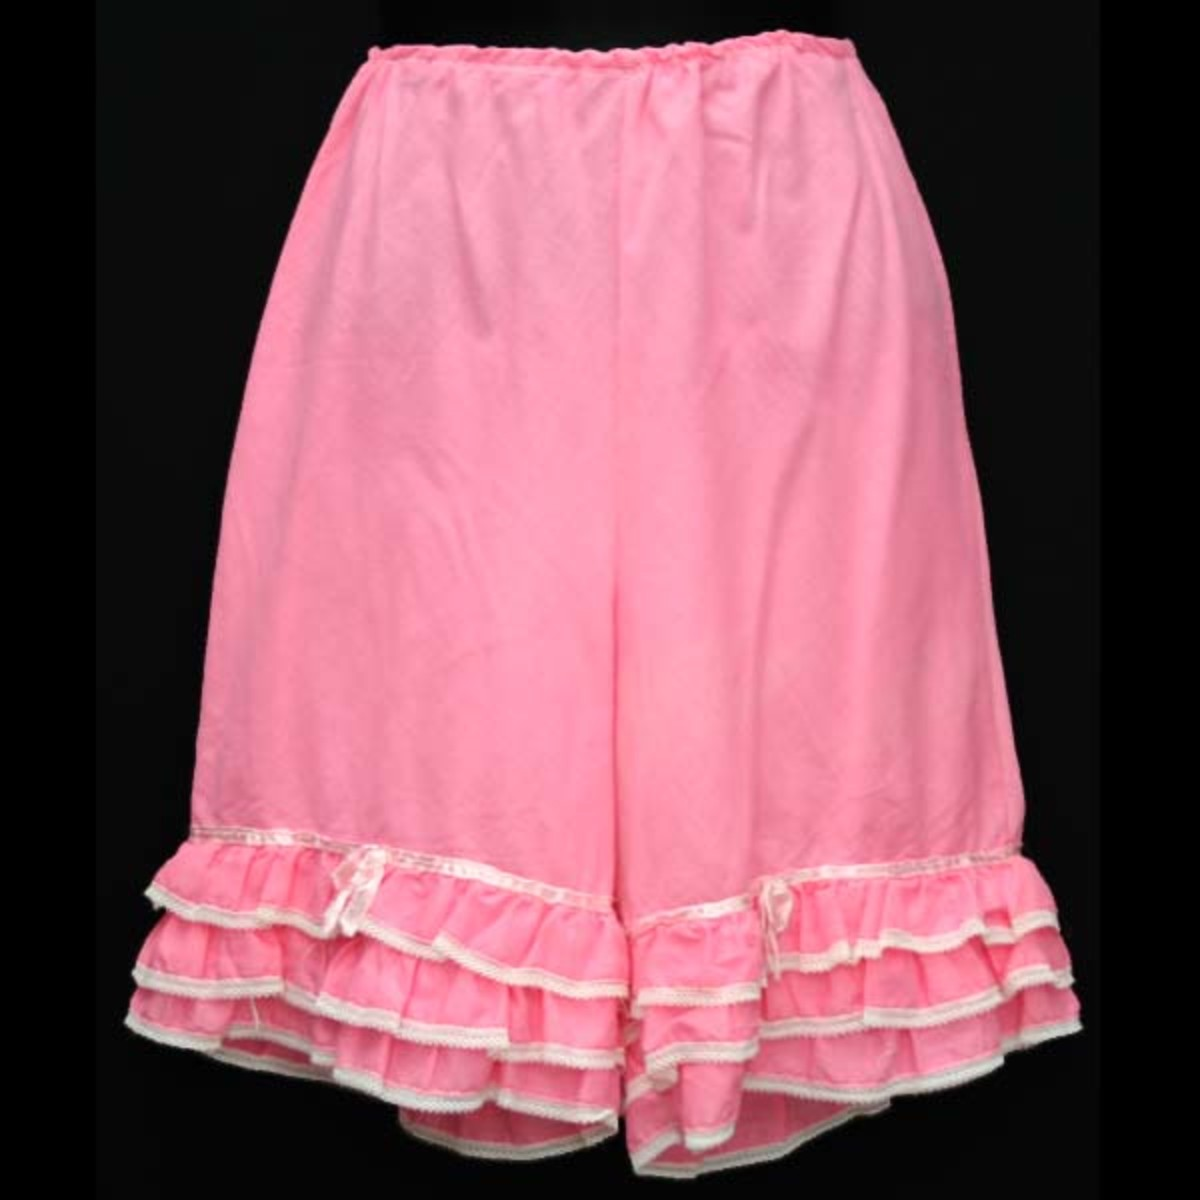 Pink Bloomers in cotton from the 1950s, price $26 from vintagetrends.com